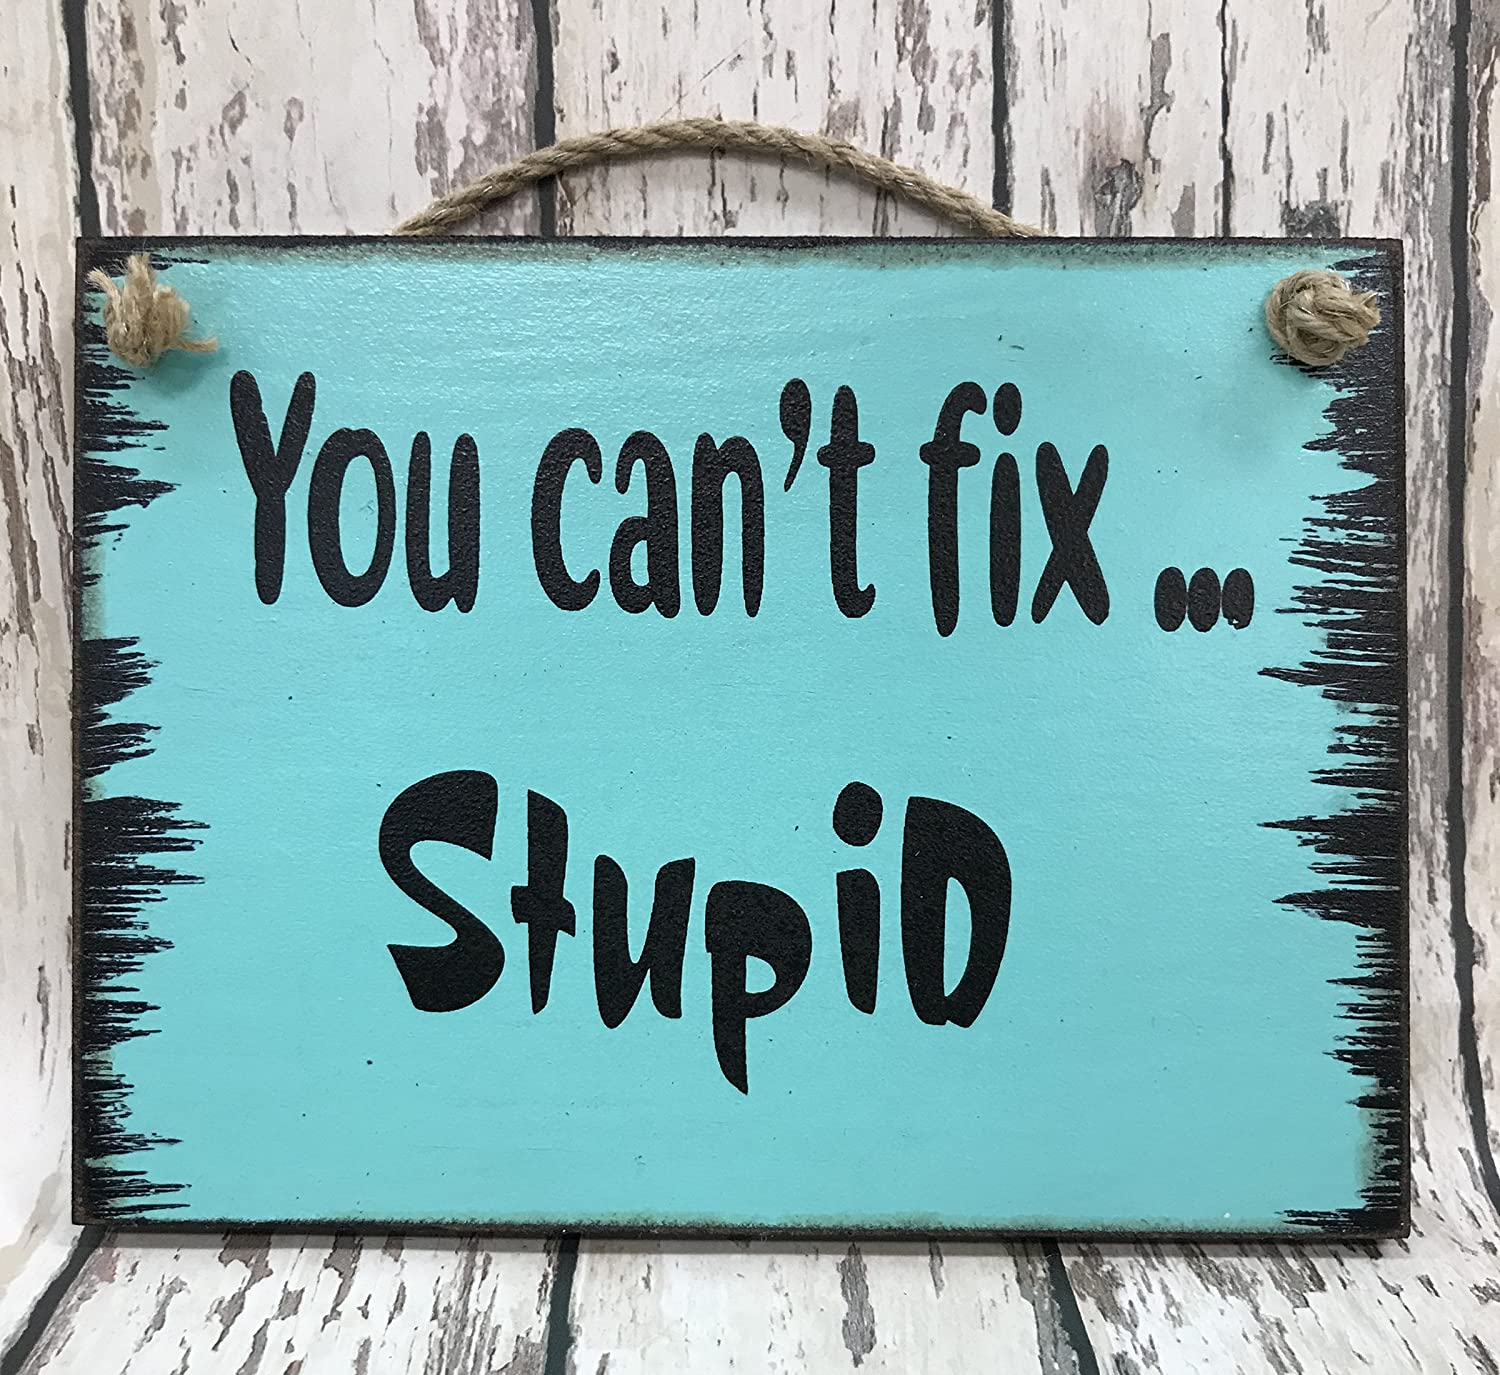 OFFICE HUMOR SIGN You CAN'T FIX STUPID 6X8 Reclaimed Wall